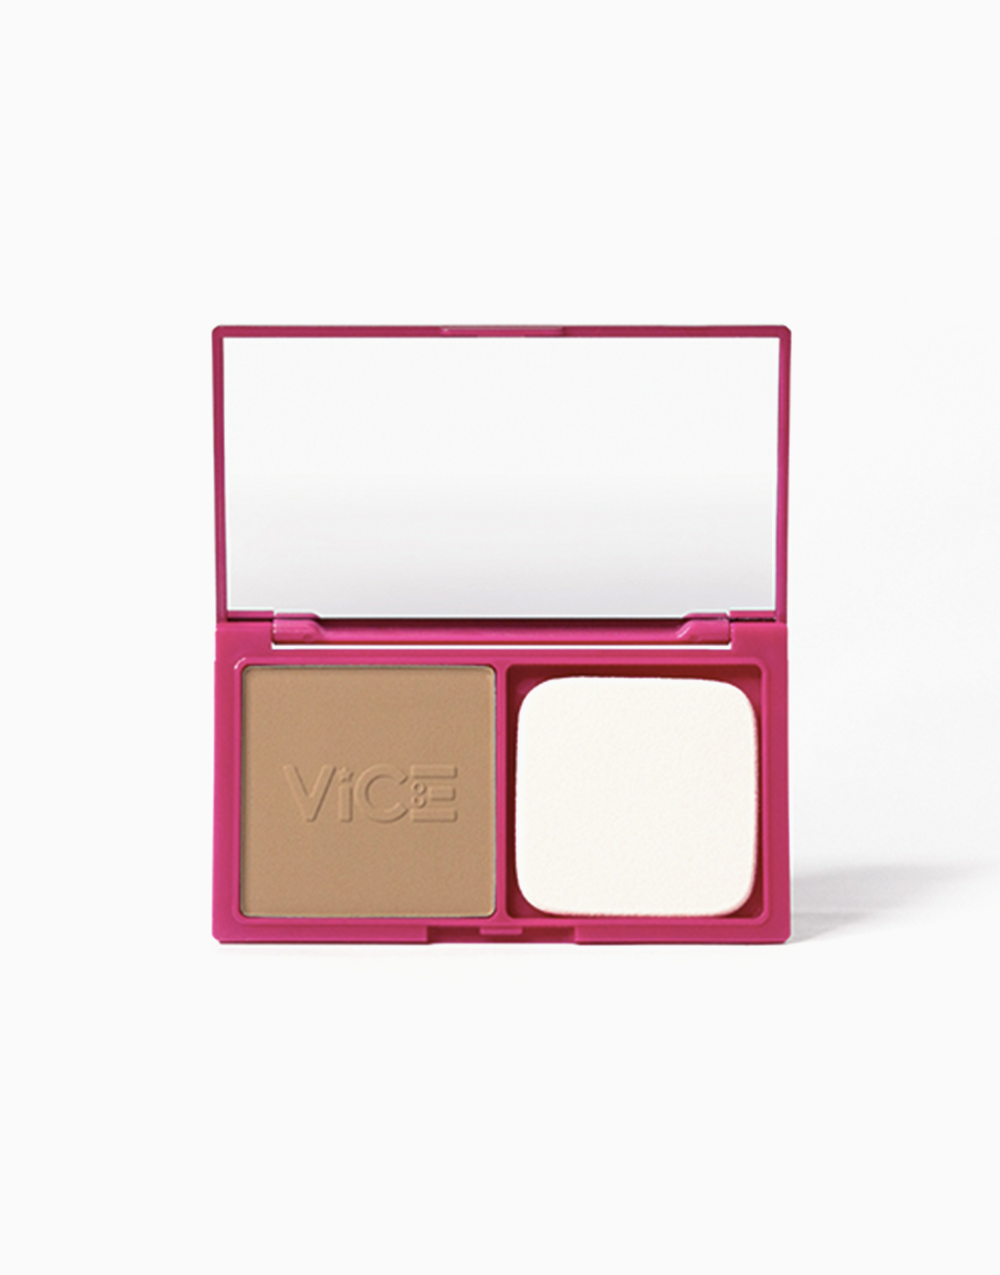 Duo Finish Foundation by Vice Cosmetics | SHADE NI VICE